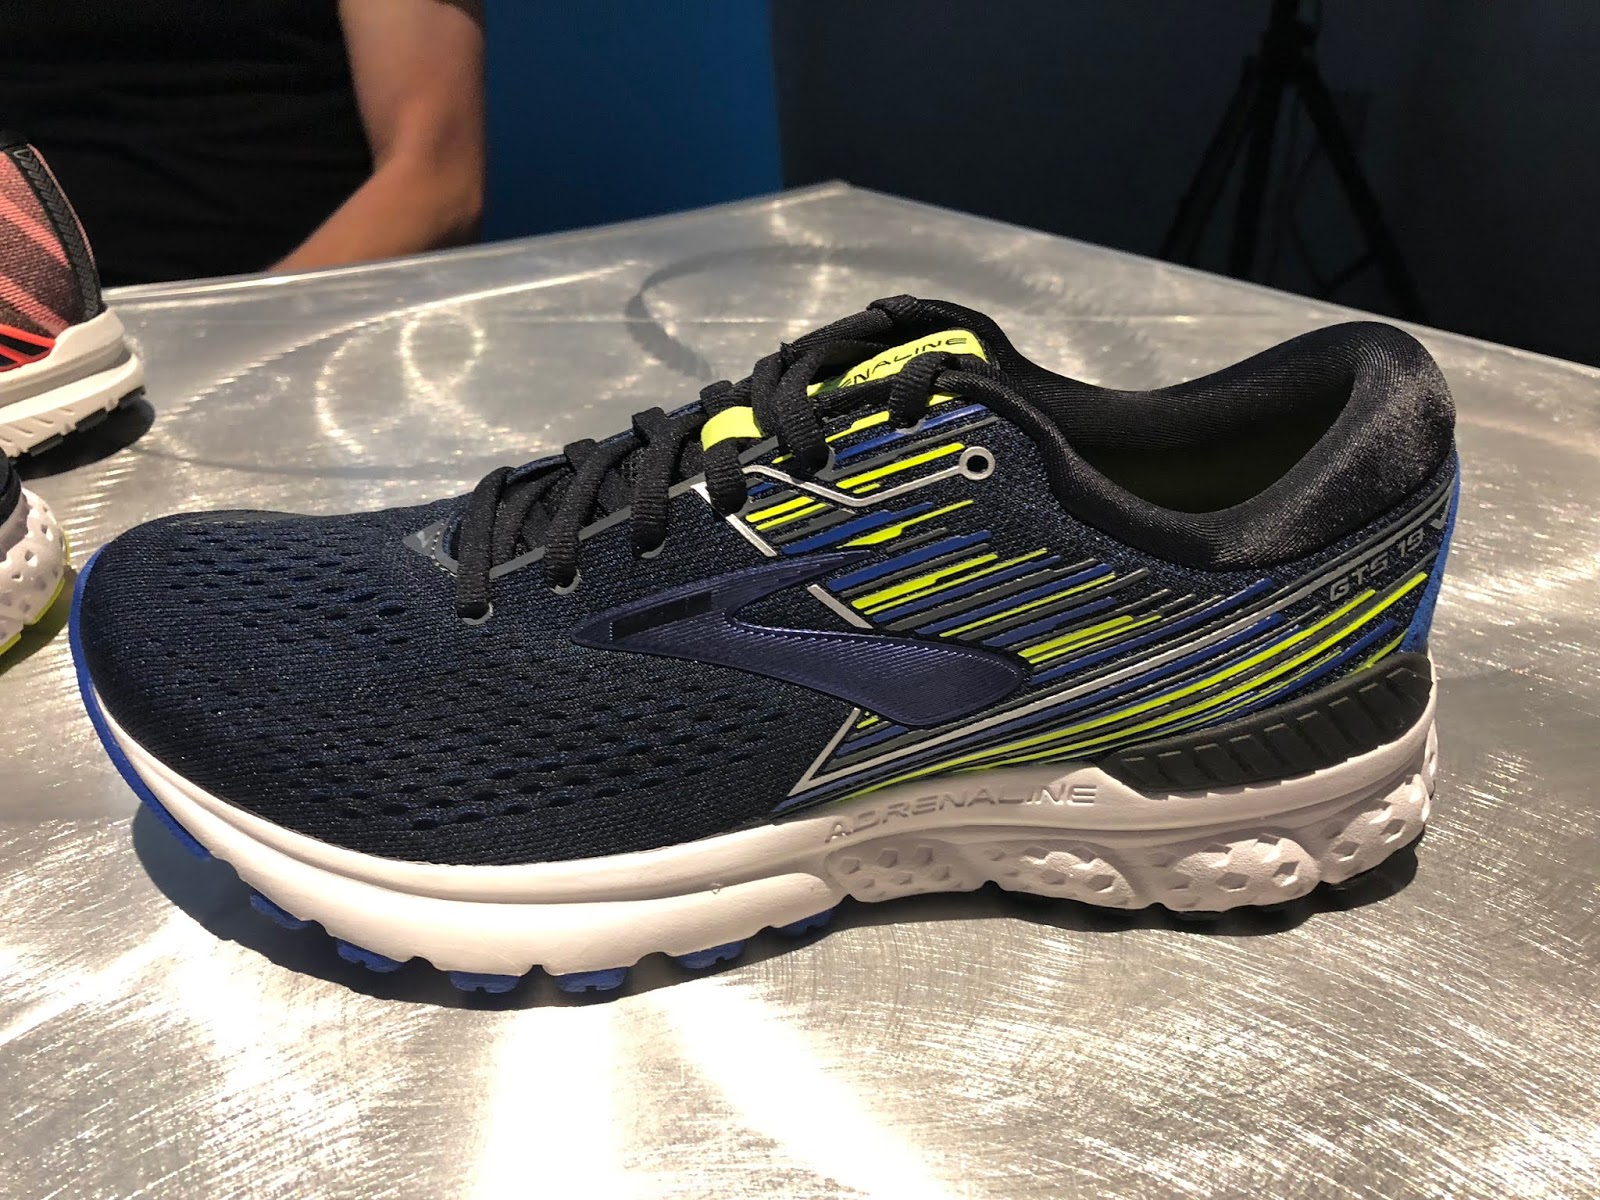 c53213c2f41 The lateral heel crash pad is Brooks new soft but lively DNA Loft which we  liked so much in the Ghost 11 (RTR review) and as the entire midsole of the  ...